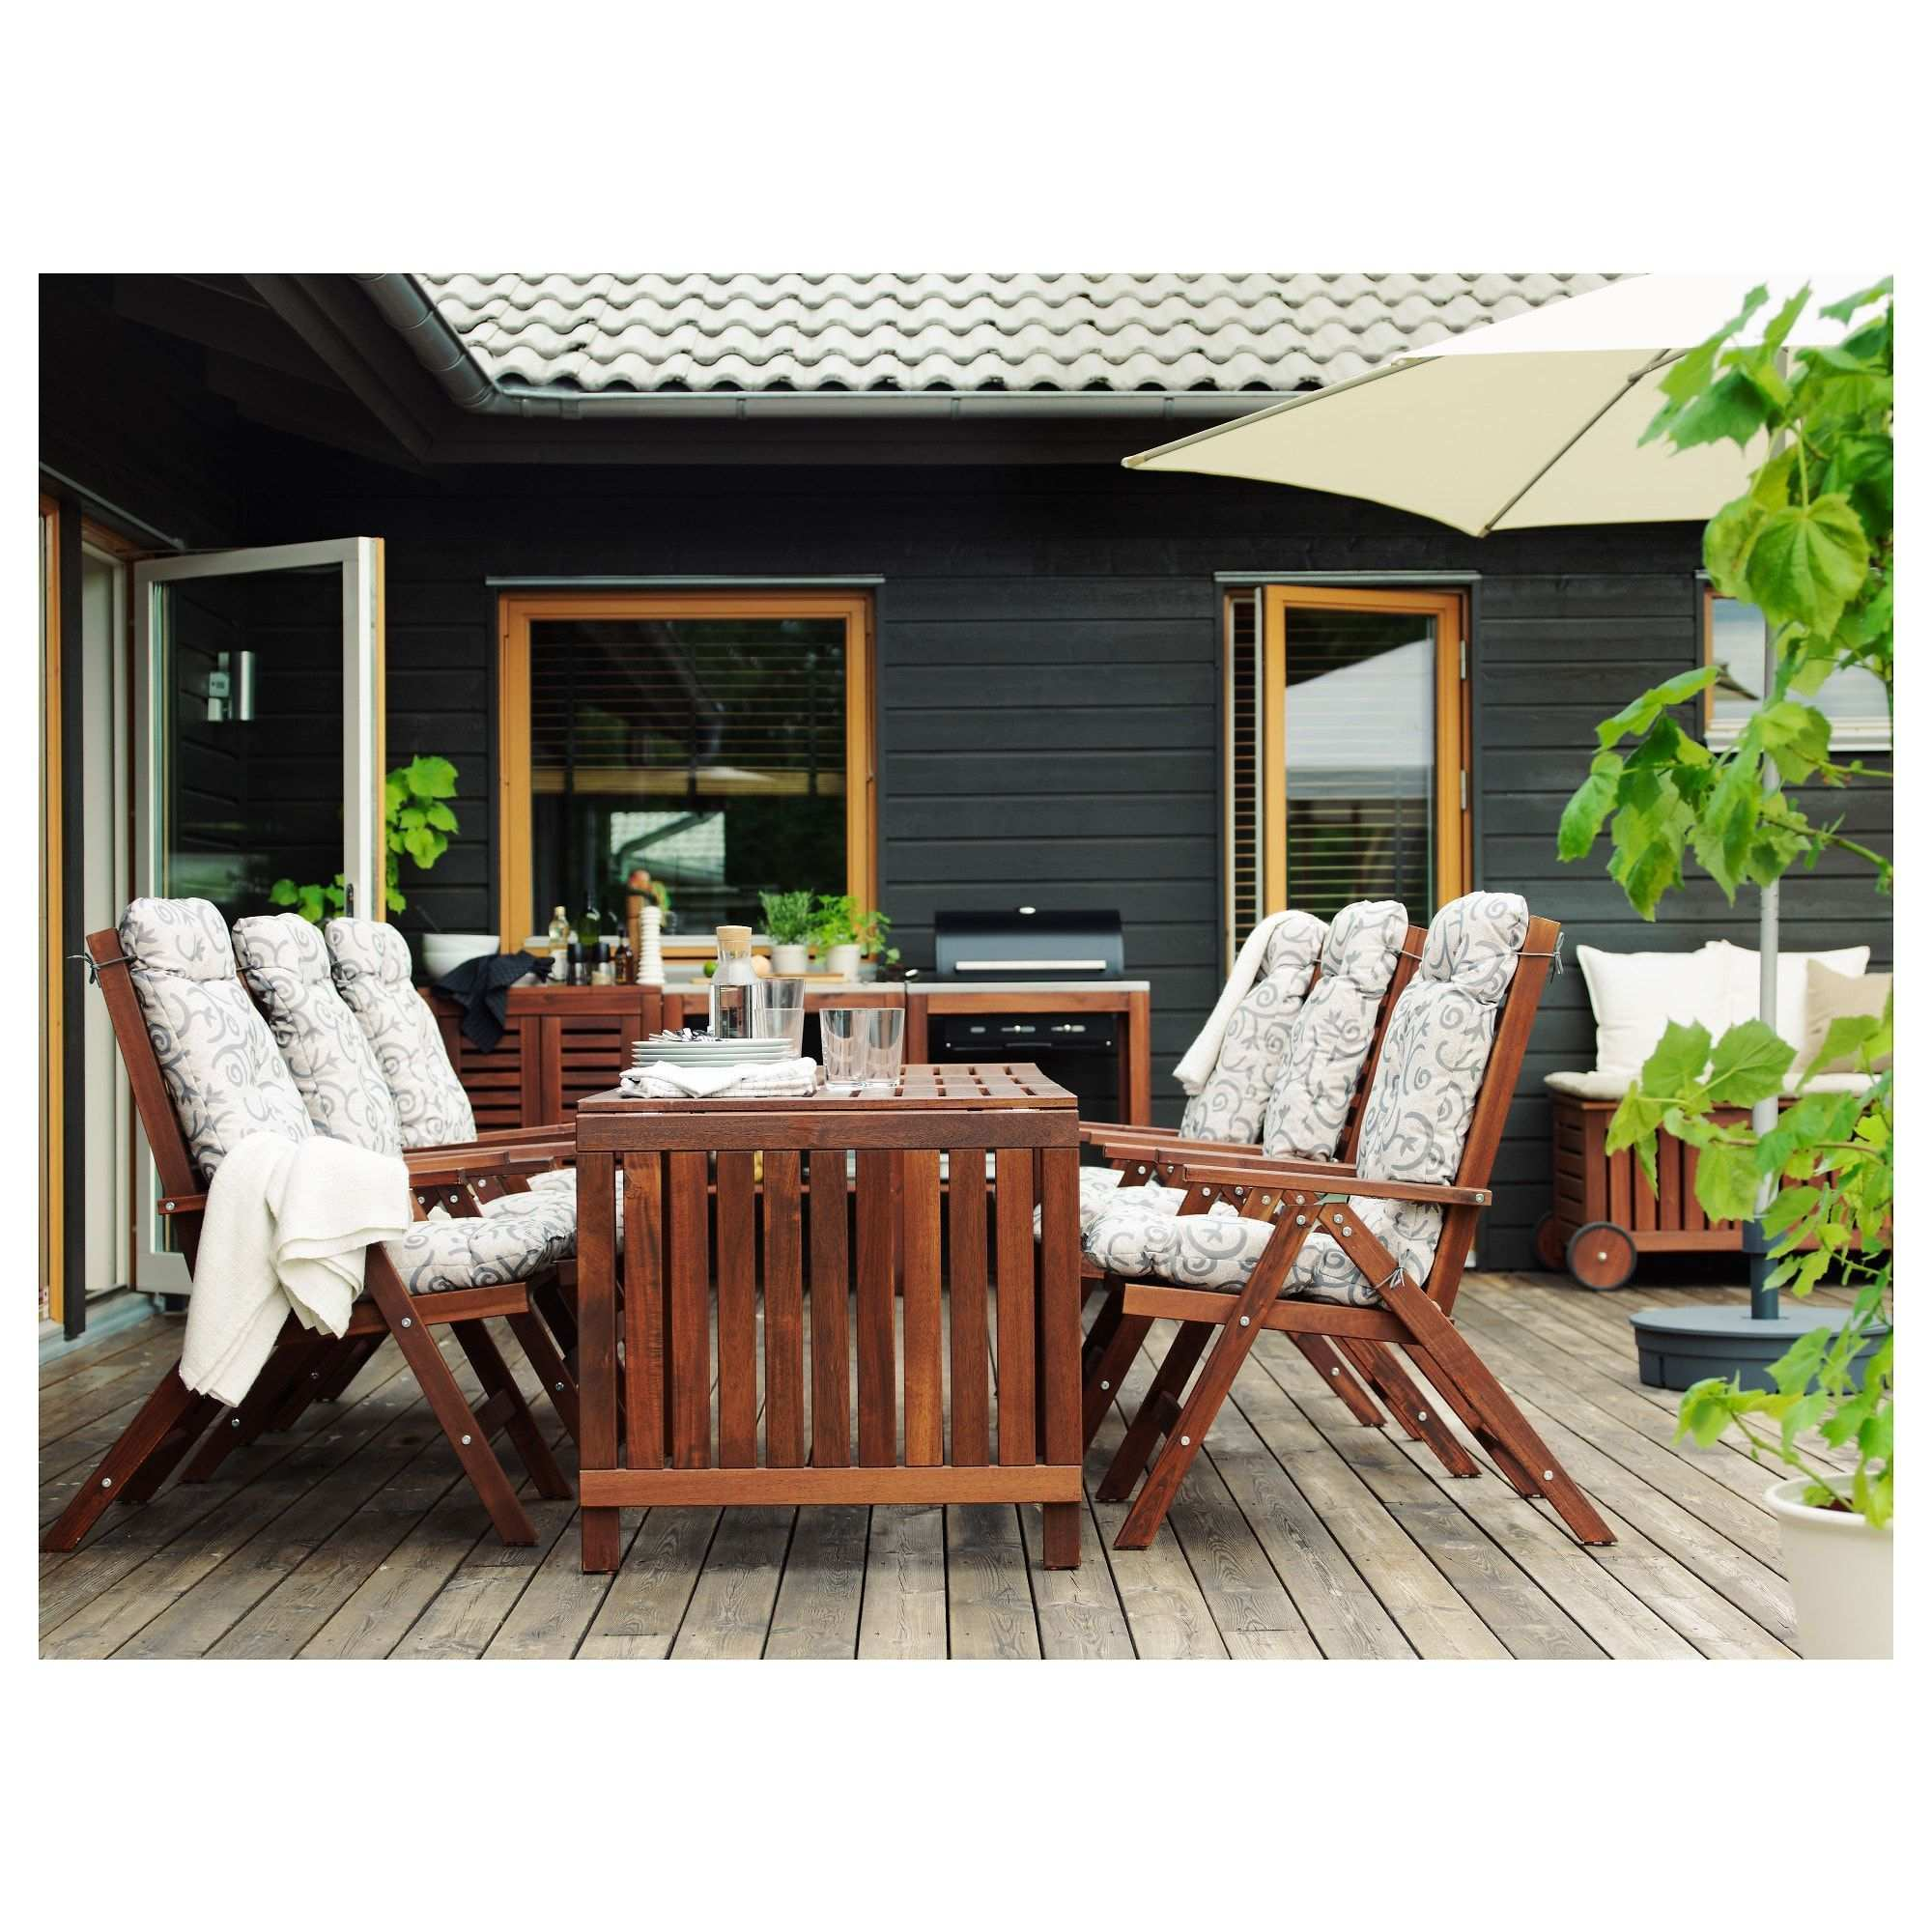 84 Gallery of Ikea 2020 Catalog Exterior Date Spesification with Ikea 2020 Catalog Exterior Date